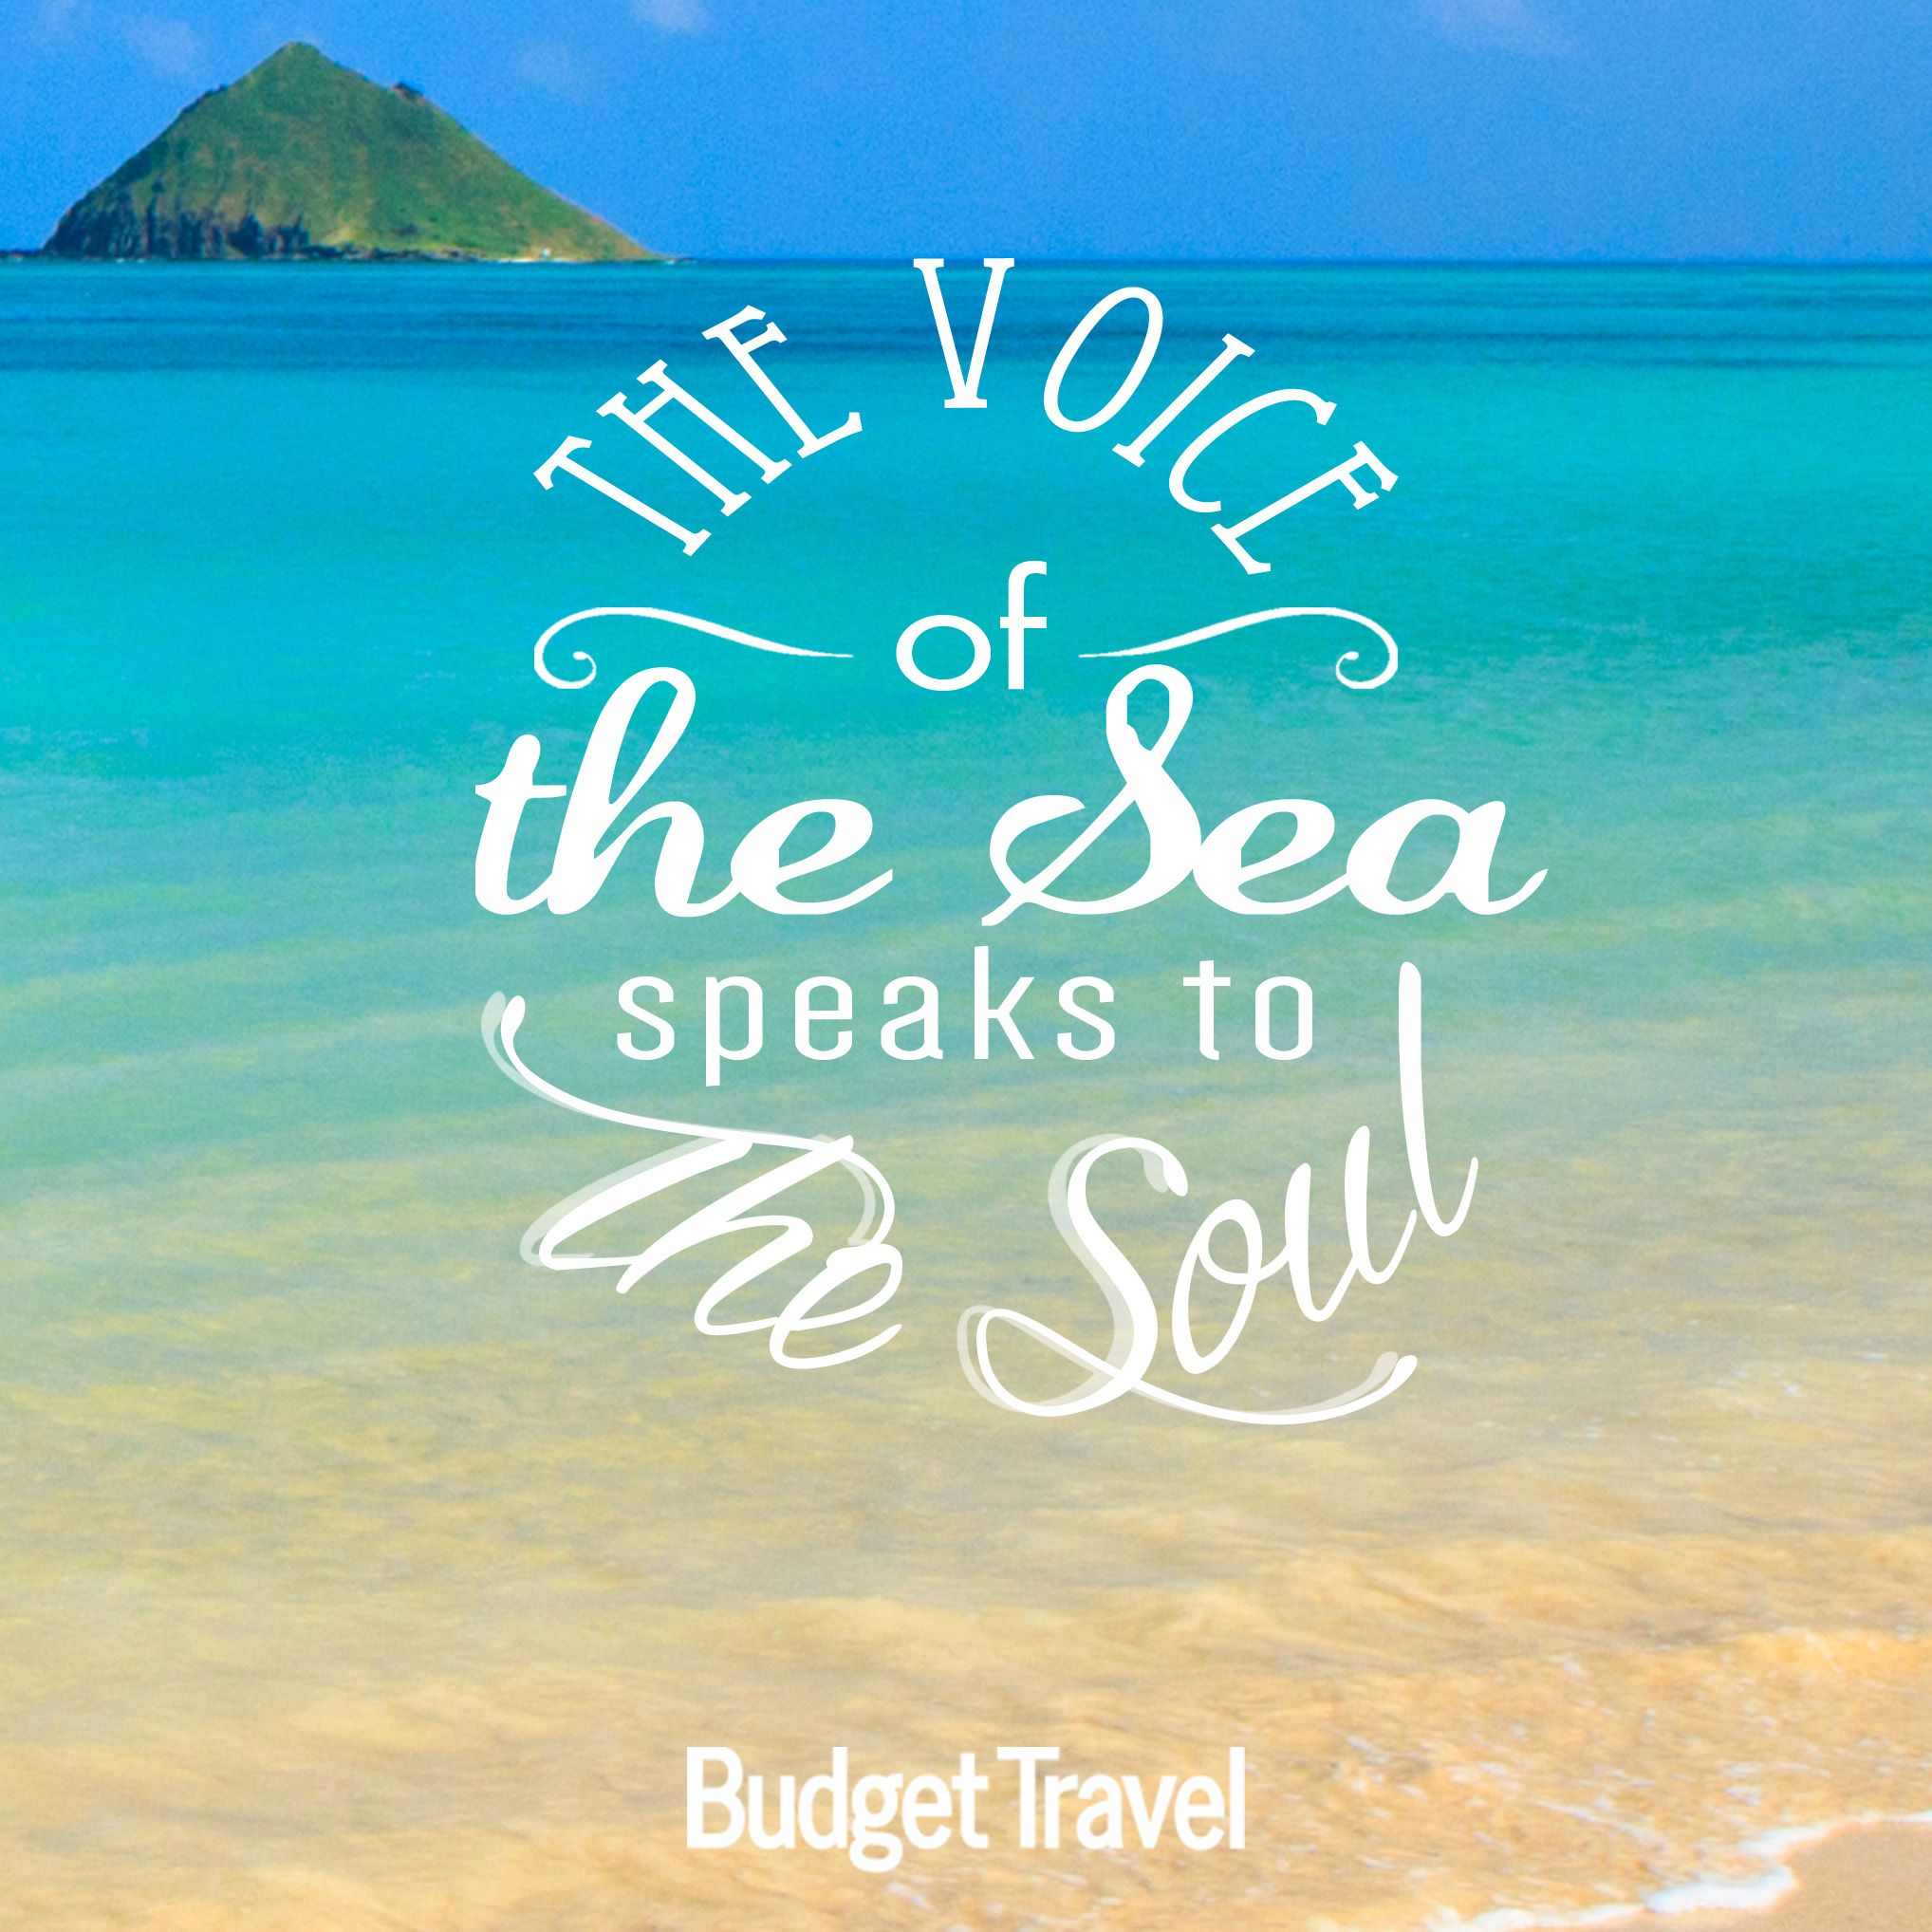 Sea Travel Quotes: The Voice Of The Sea Speaks To The Soul -Budget Travel